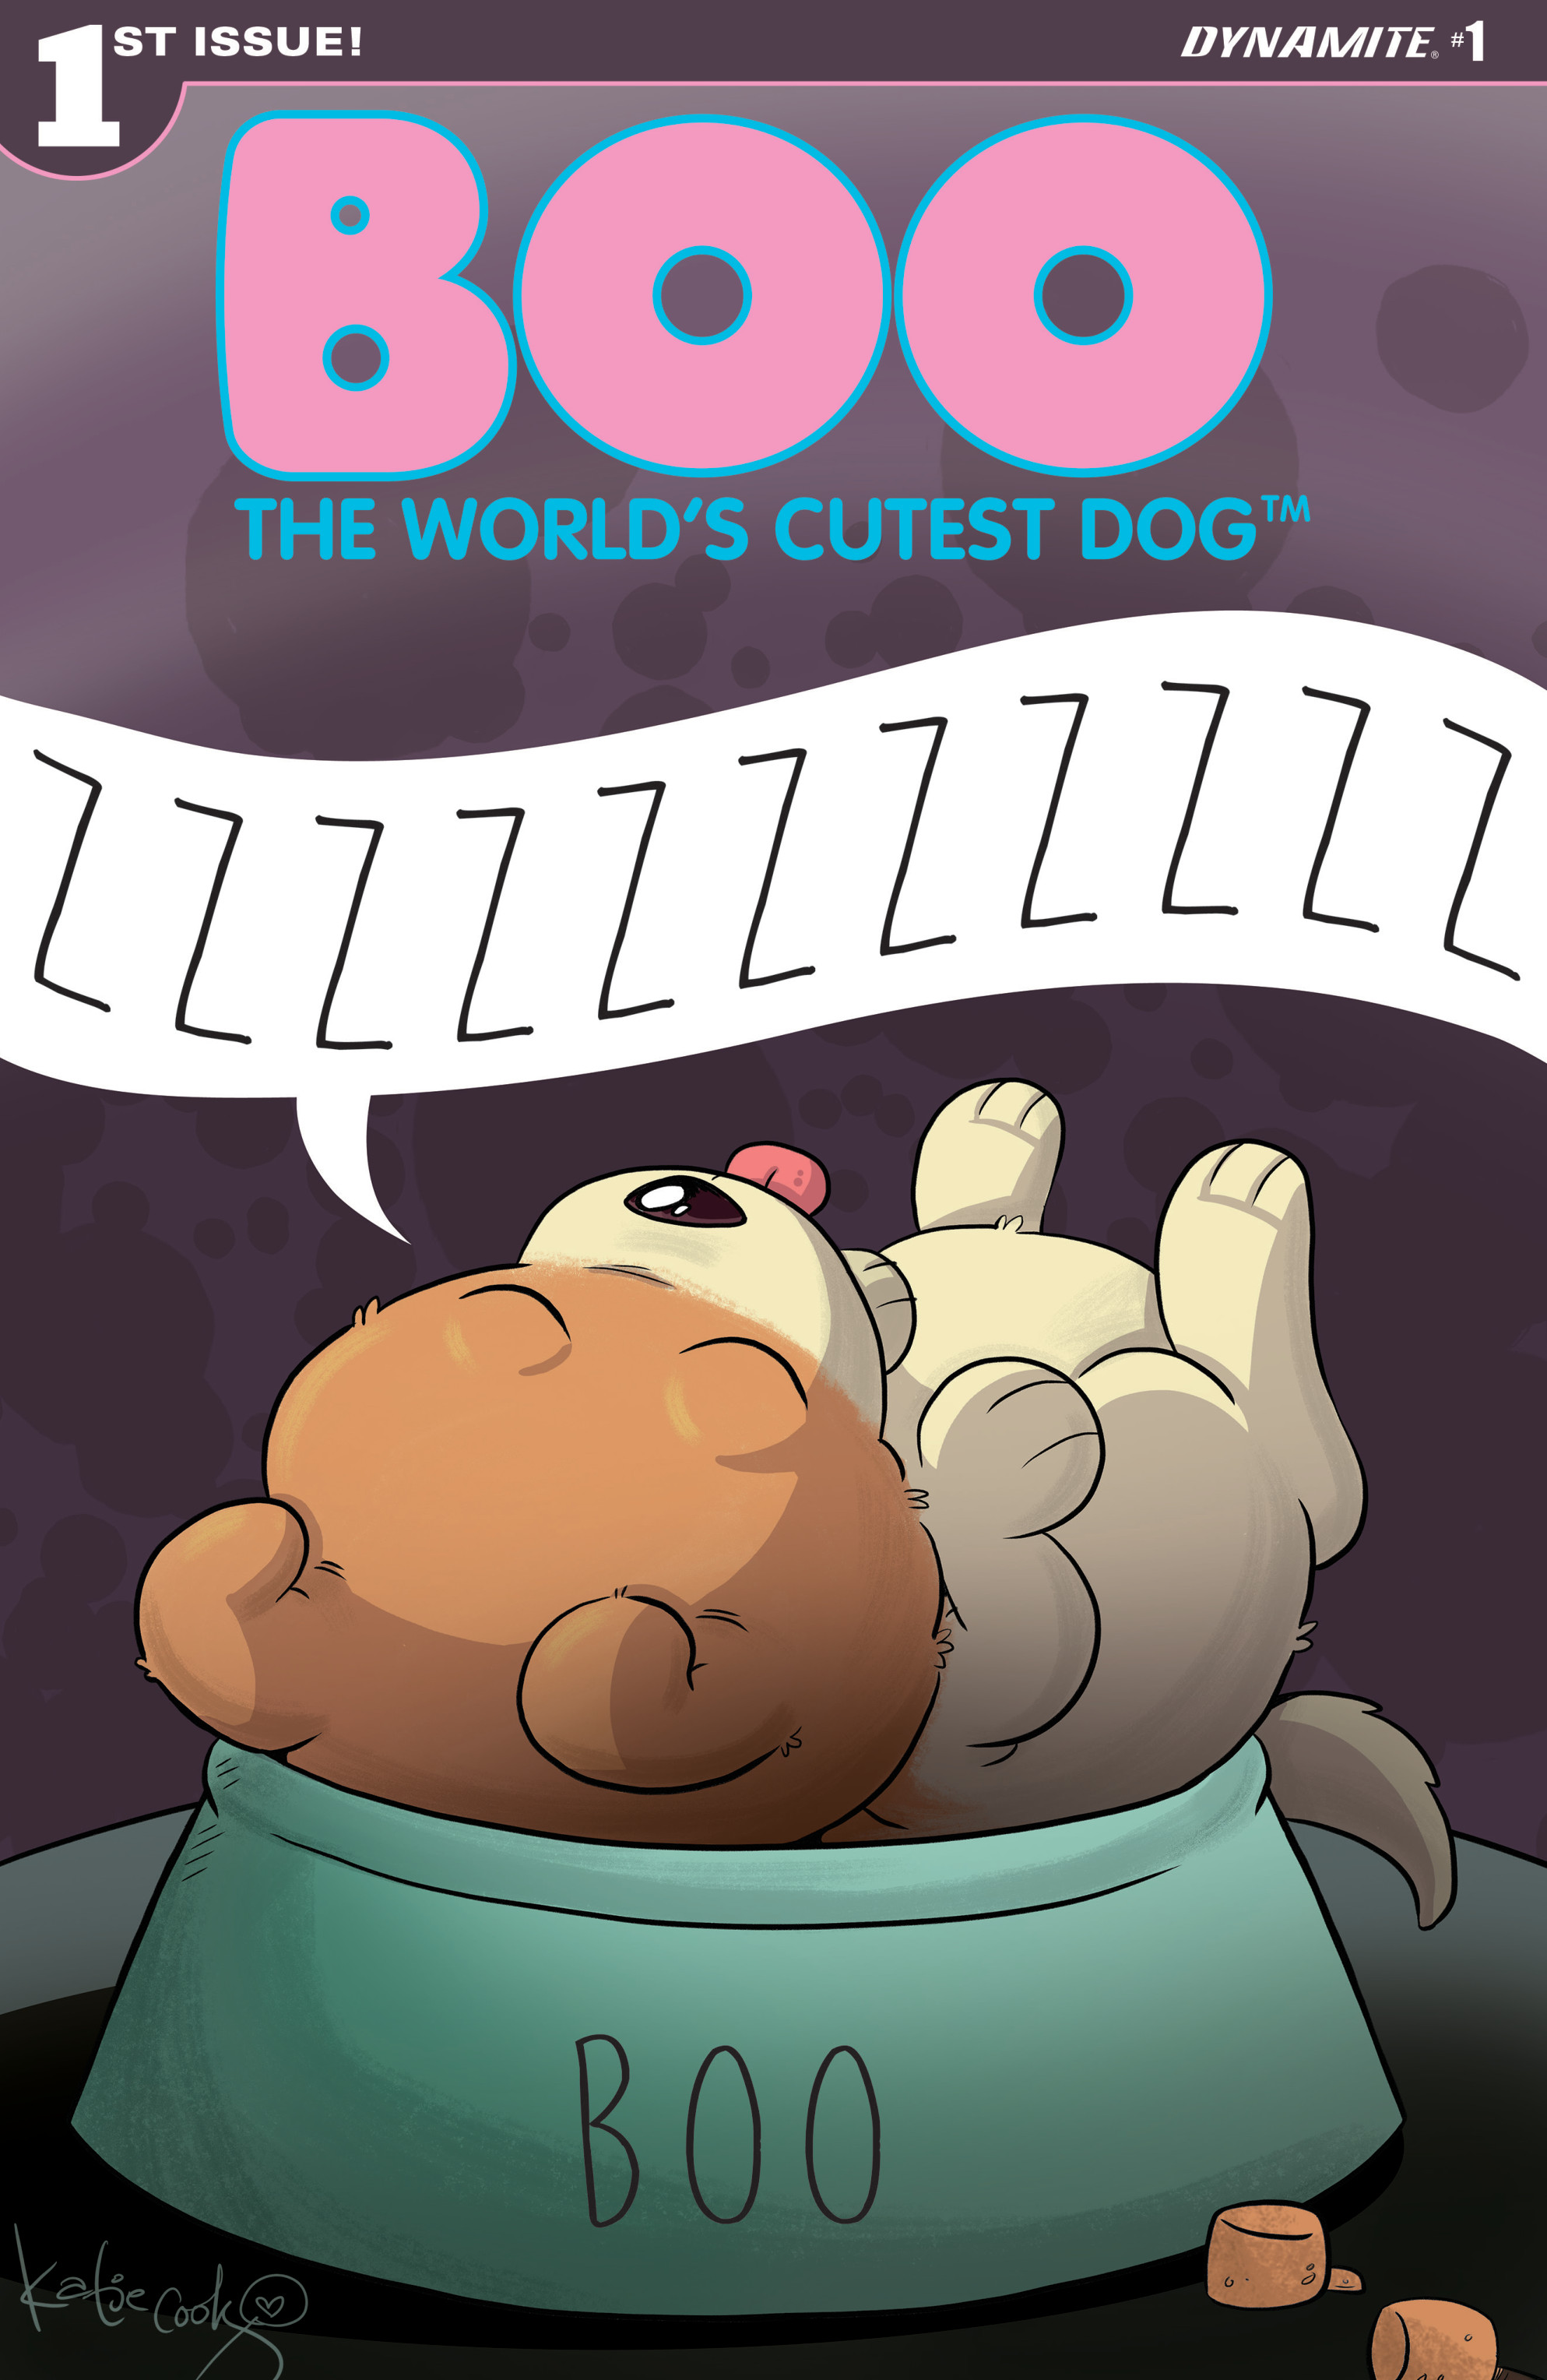 Boo The World s Cutest Dog Issue 1